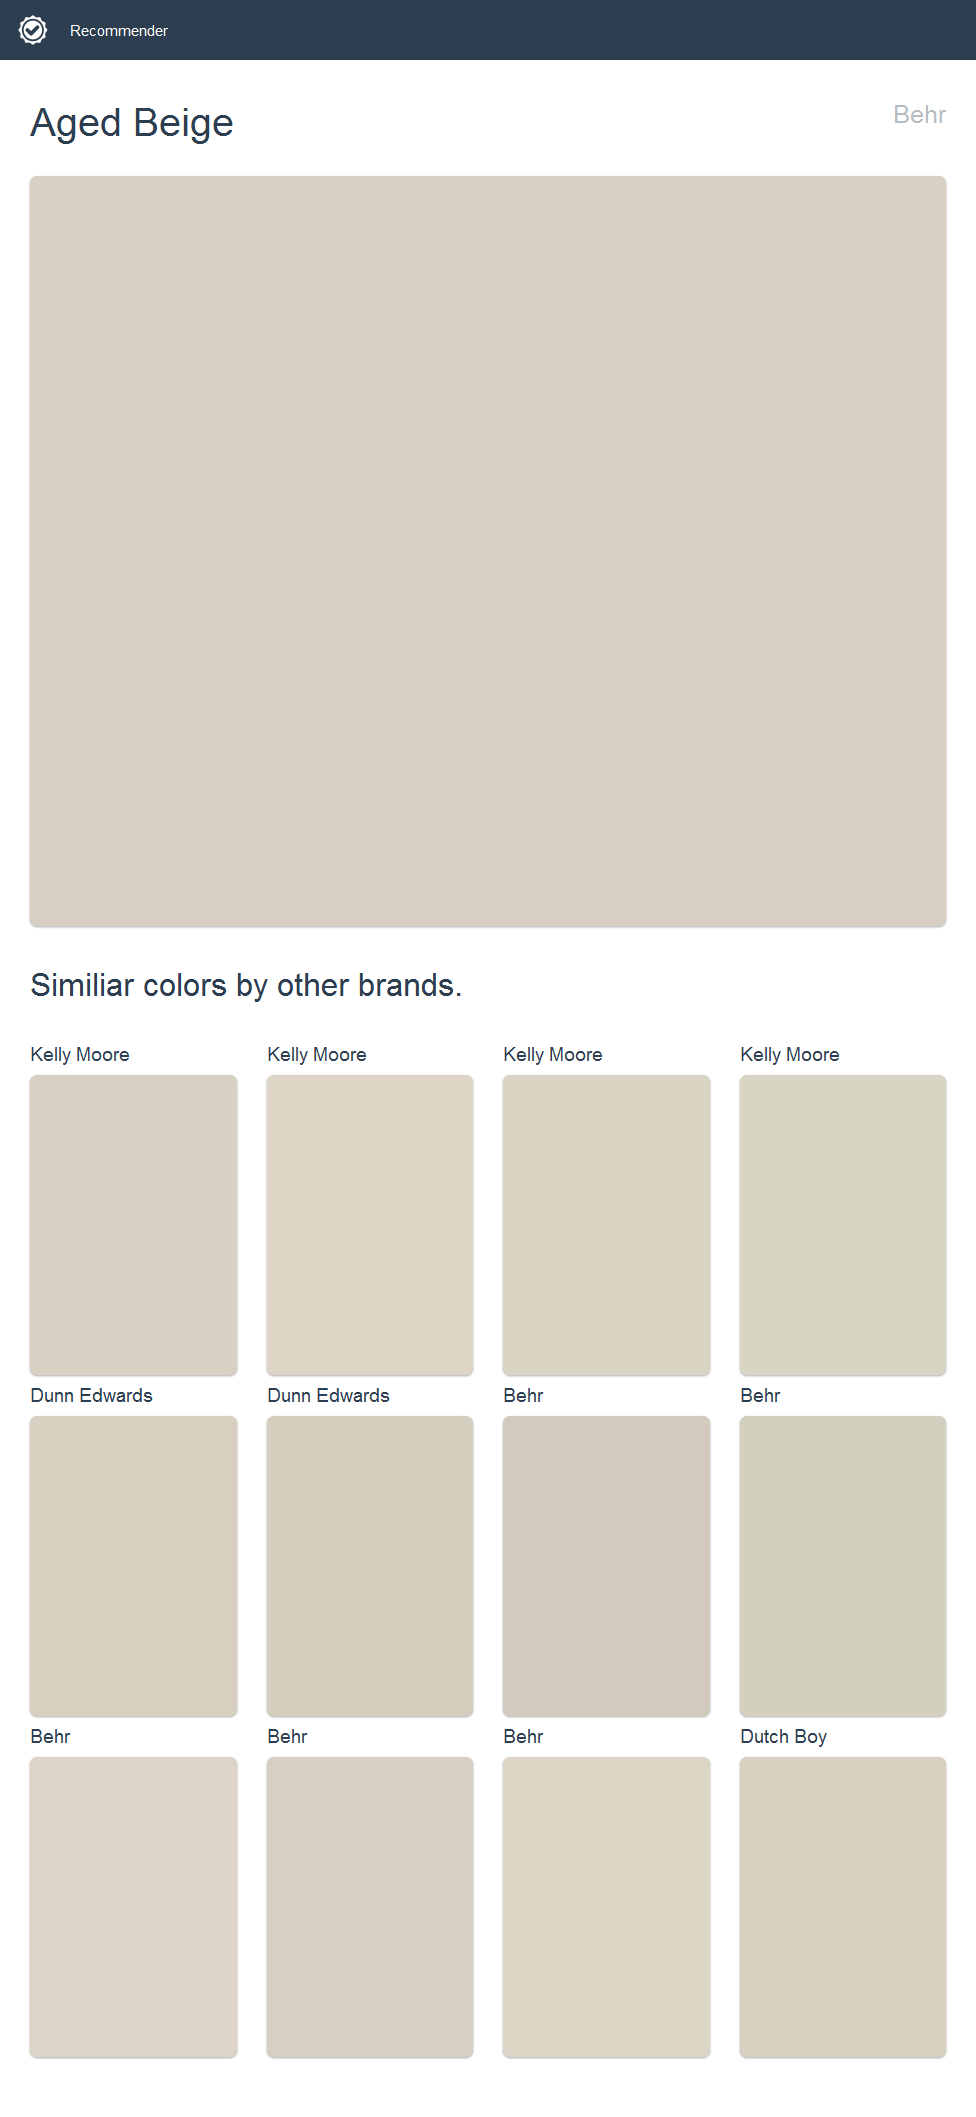 Aged Beige, Behr Click The Image To See Similiar Colors